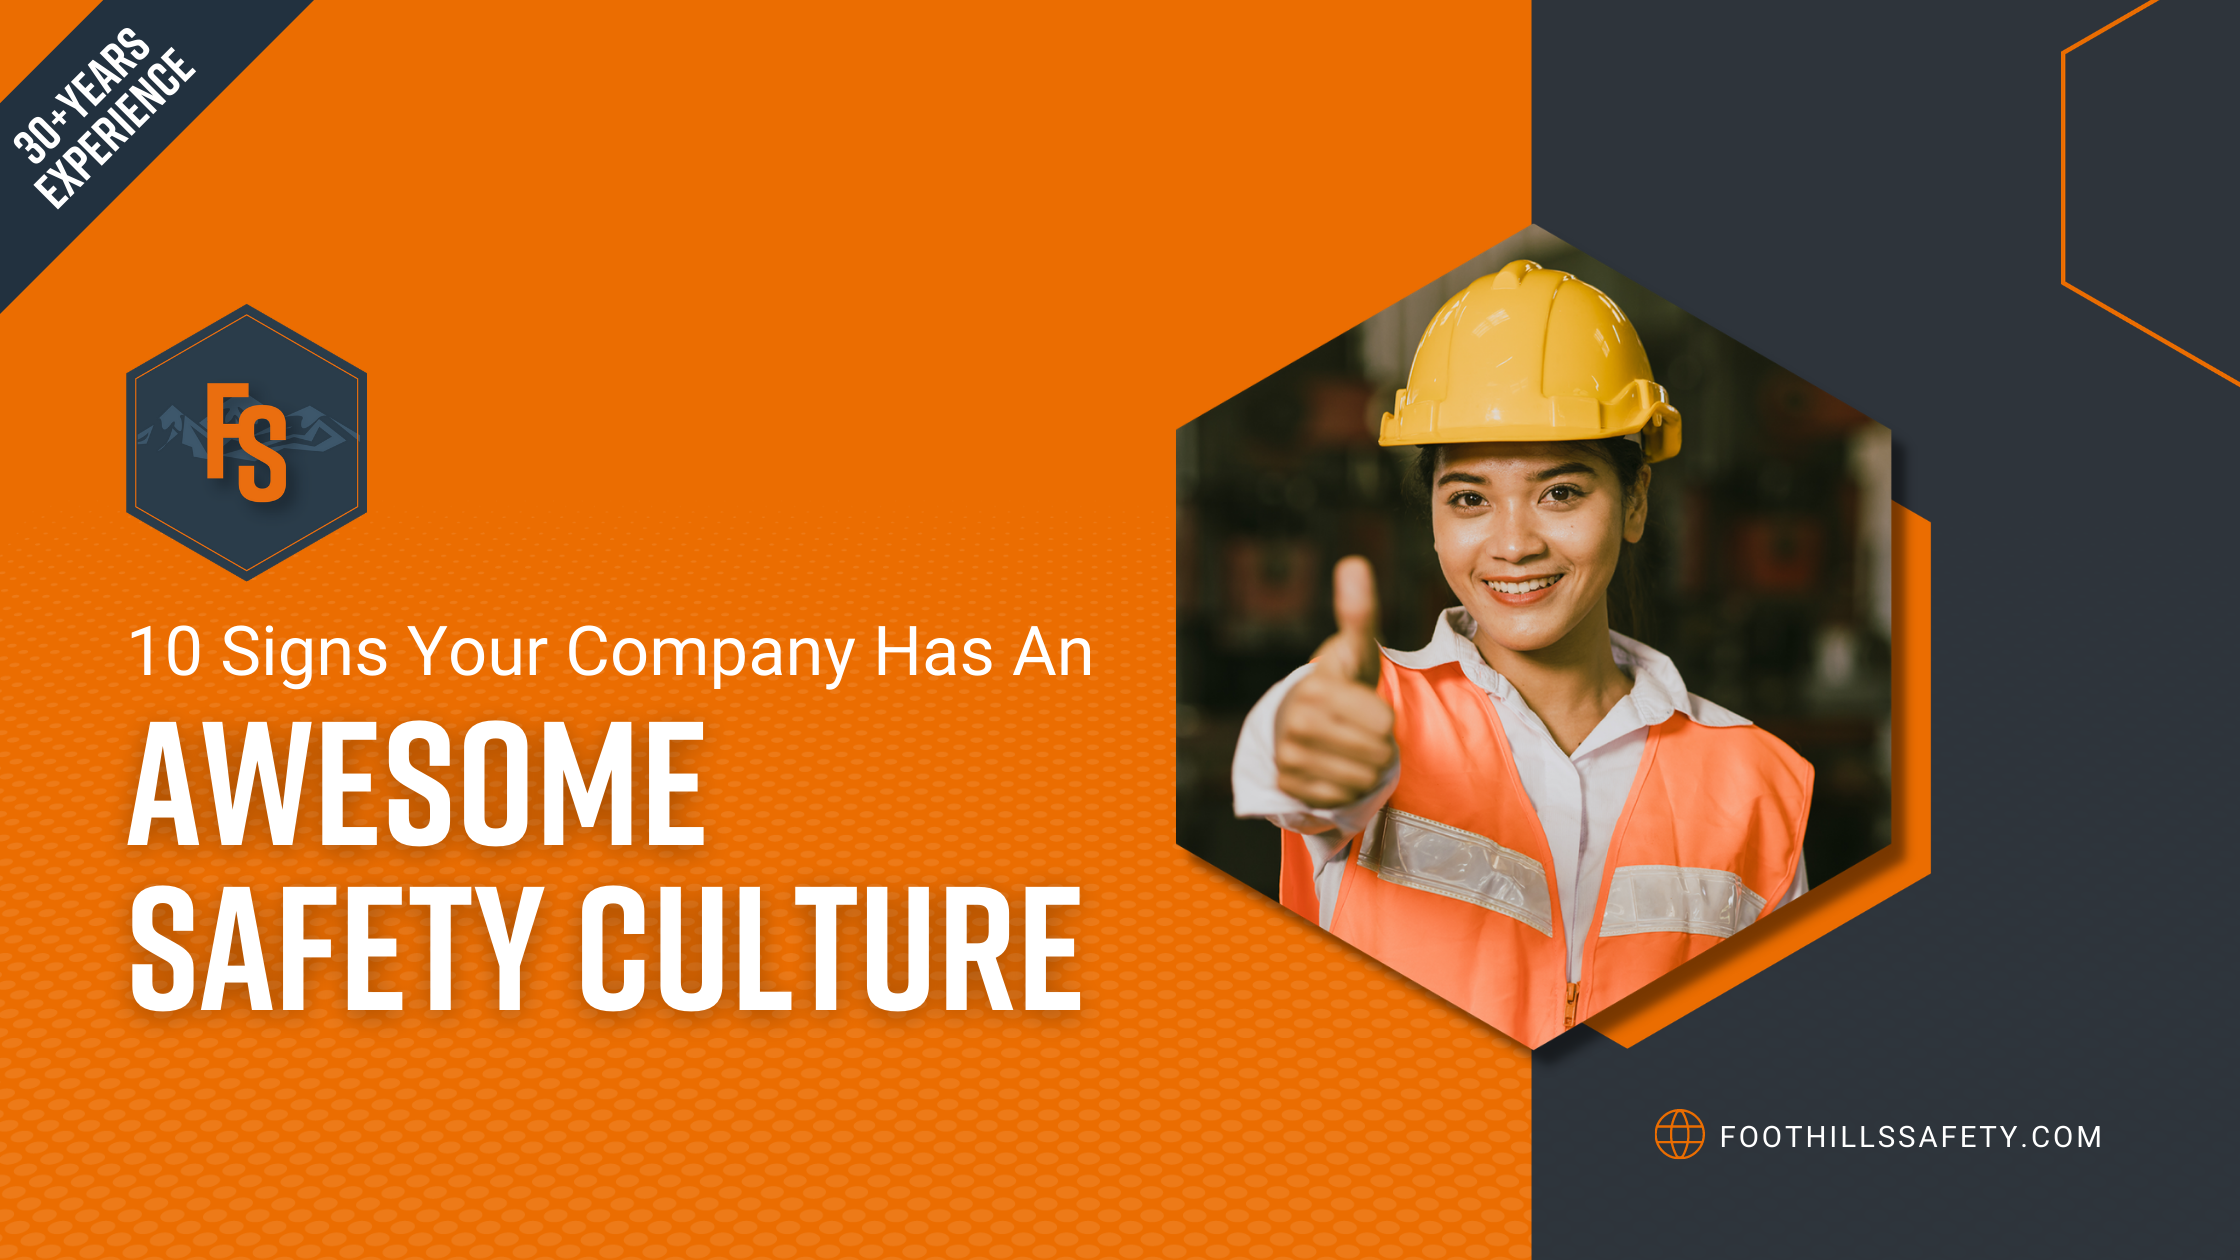 10 signs your company has an awesome safety culture